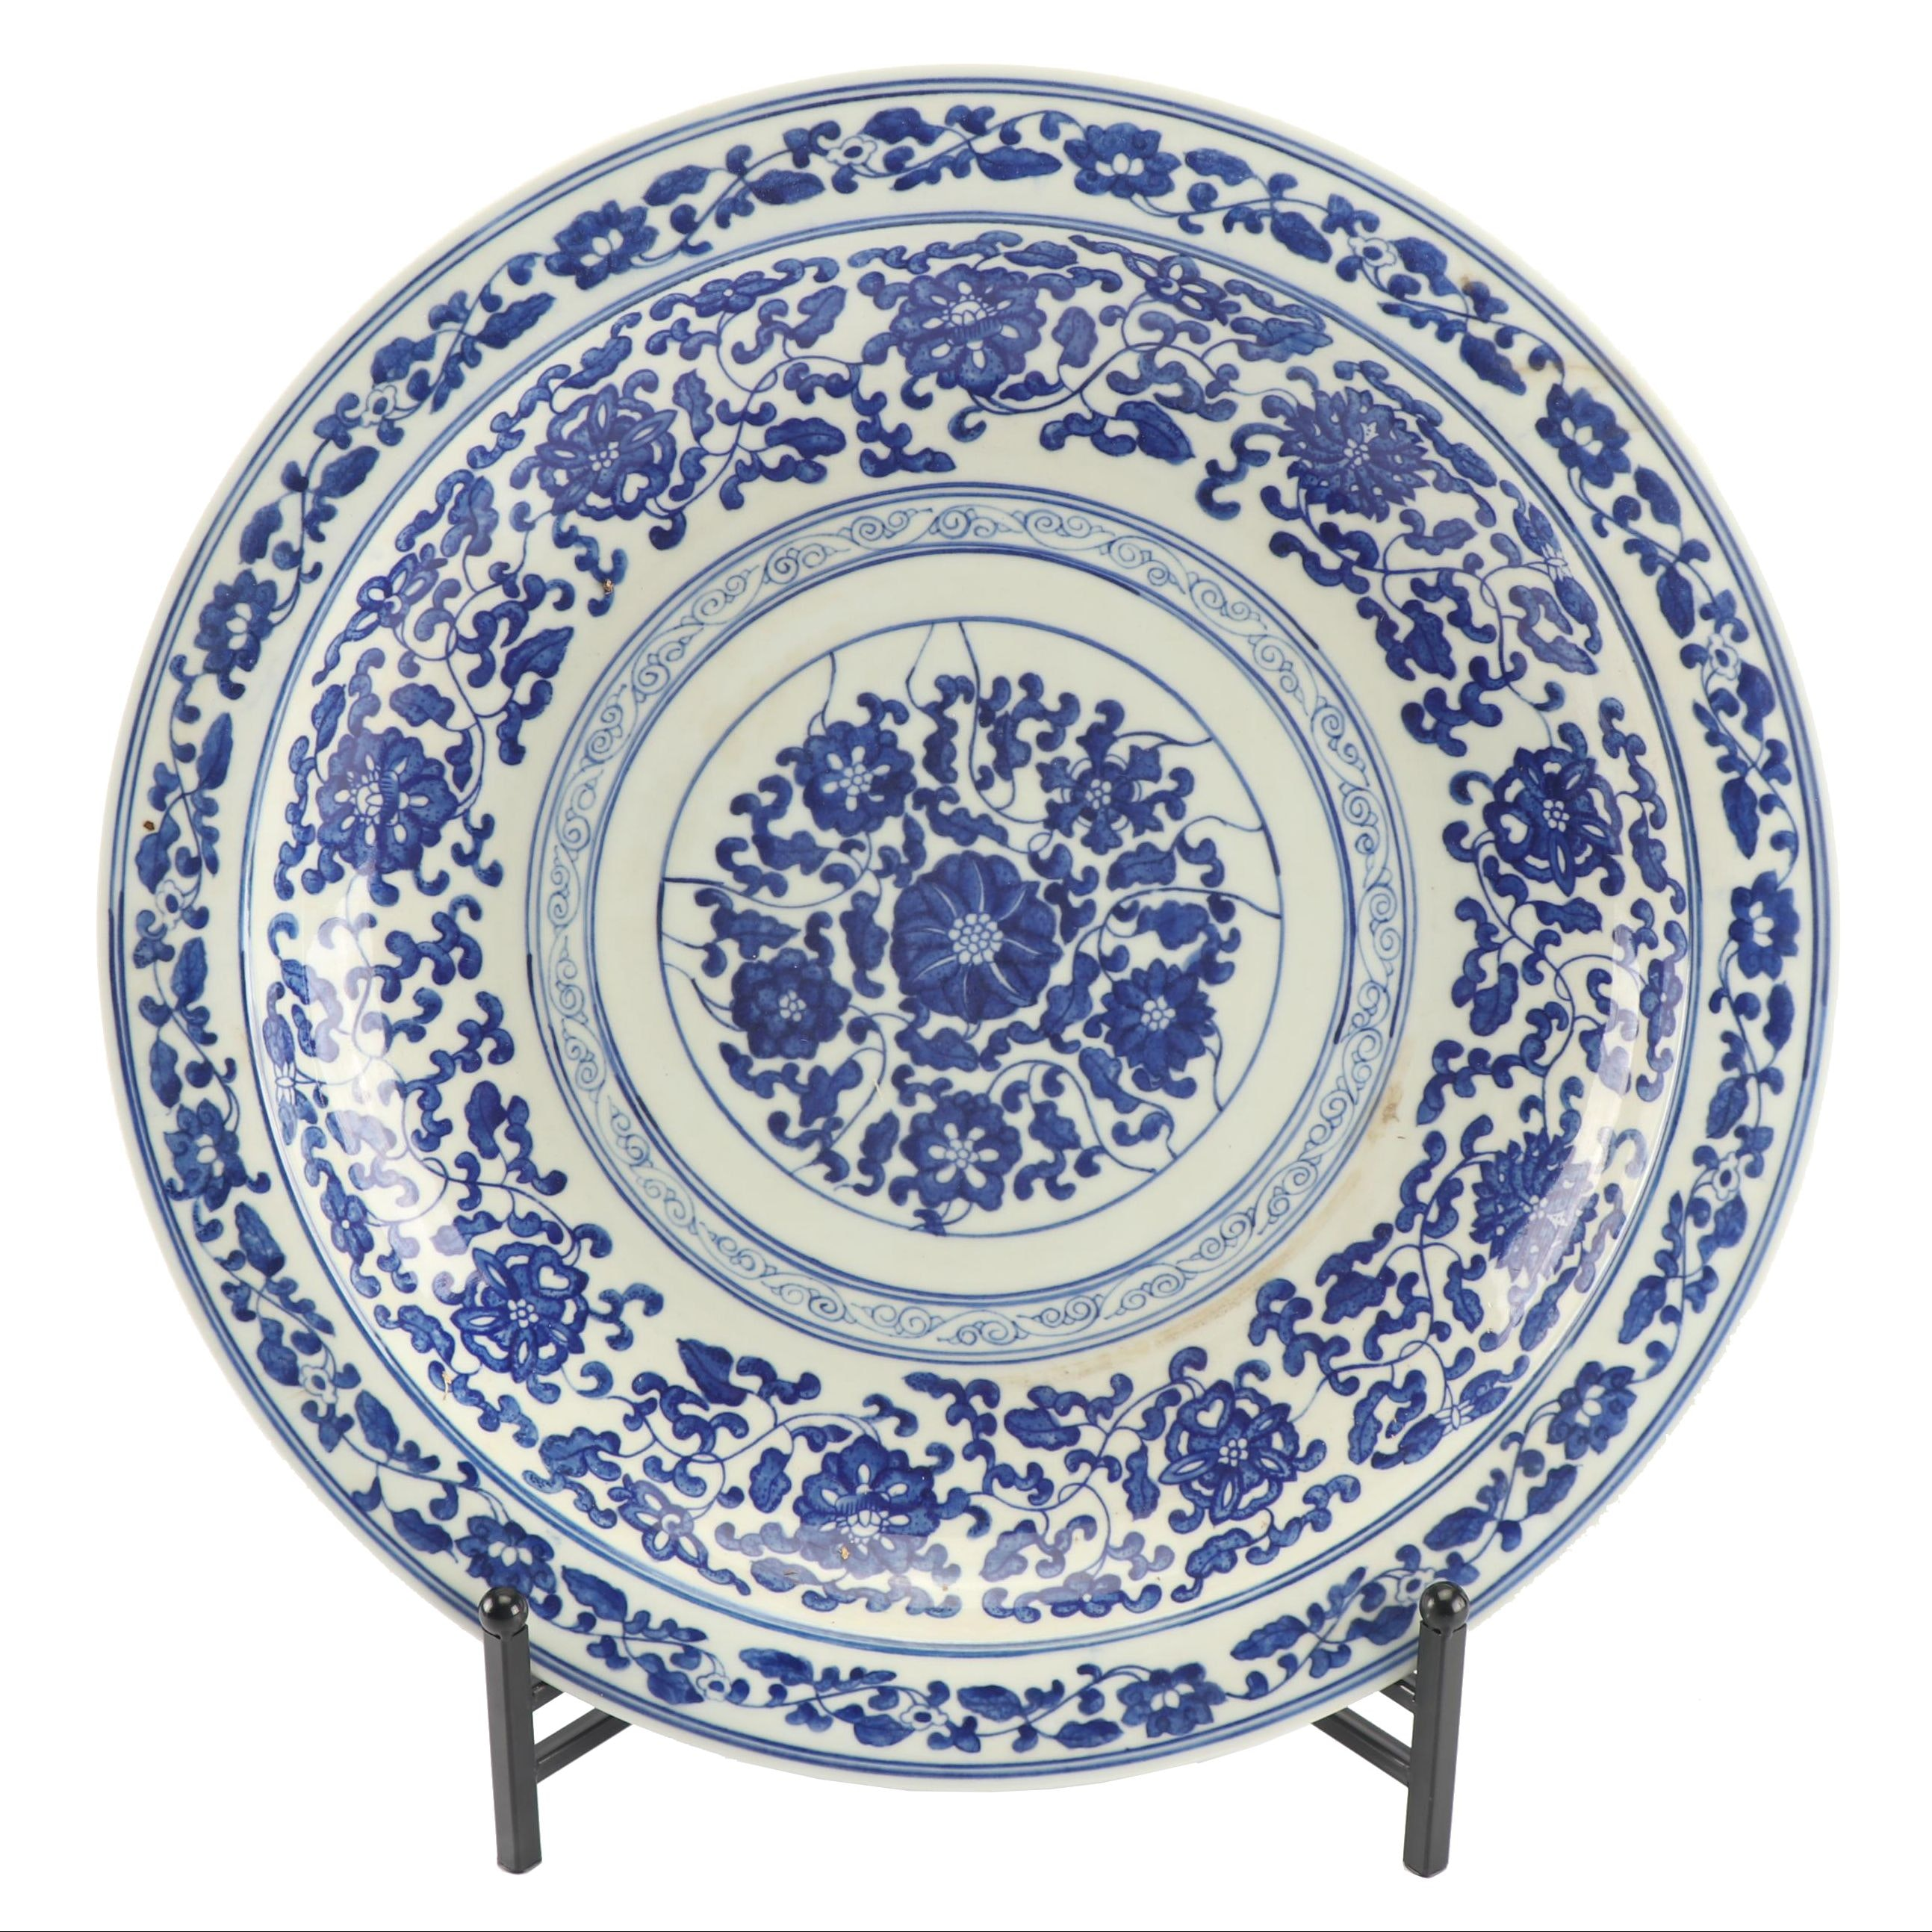 Chinese Blue and White Decorative Porcelain Platter